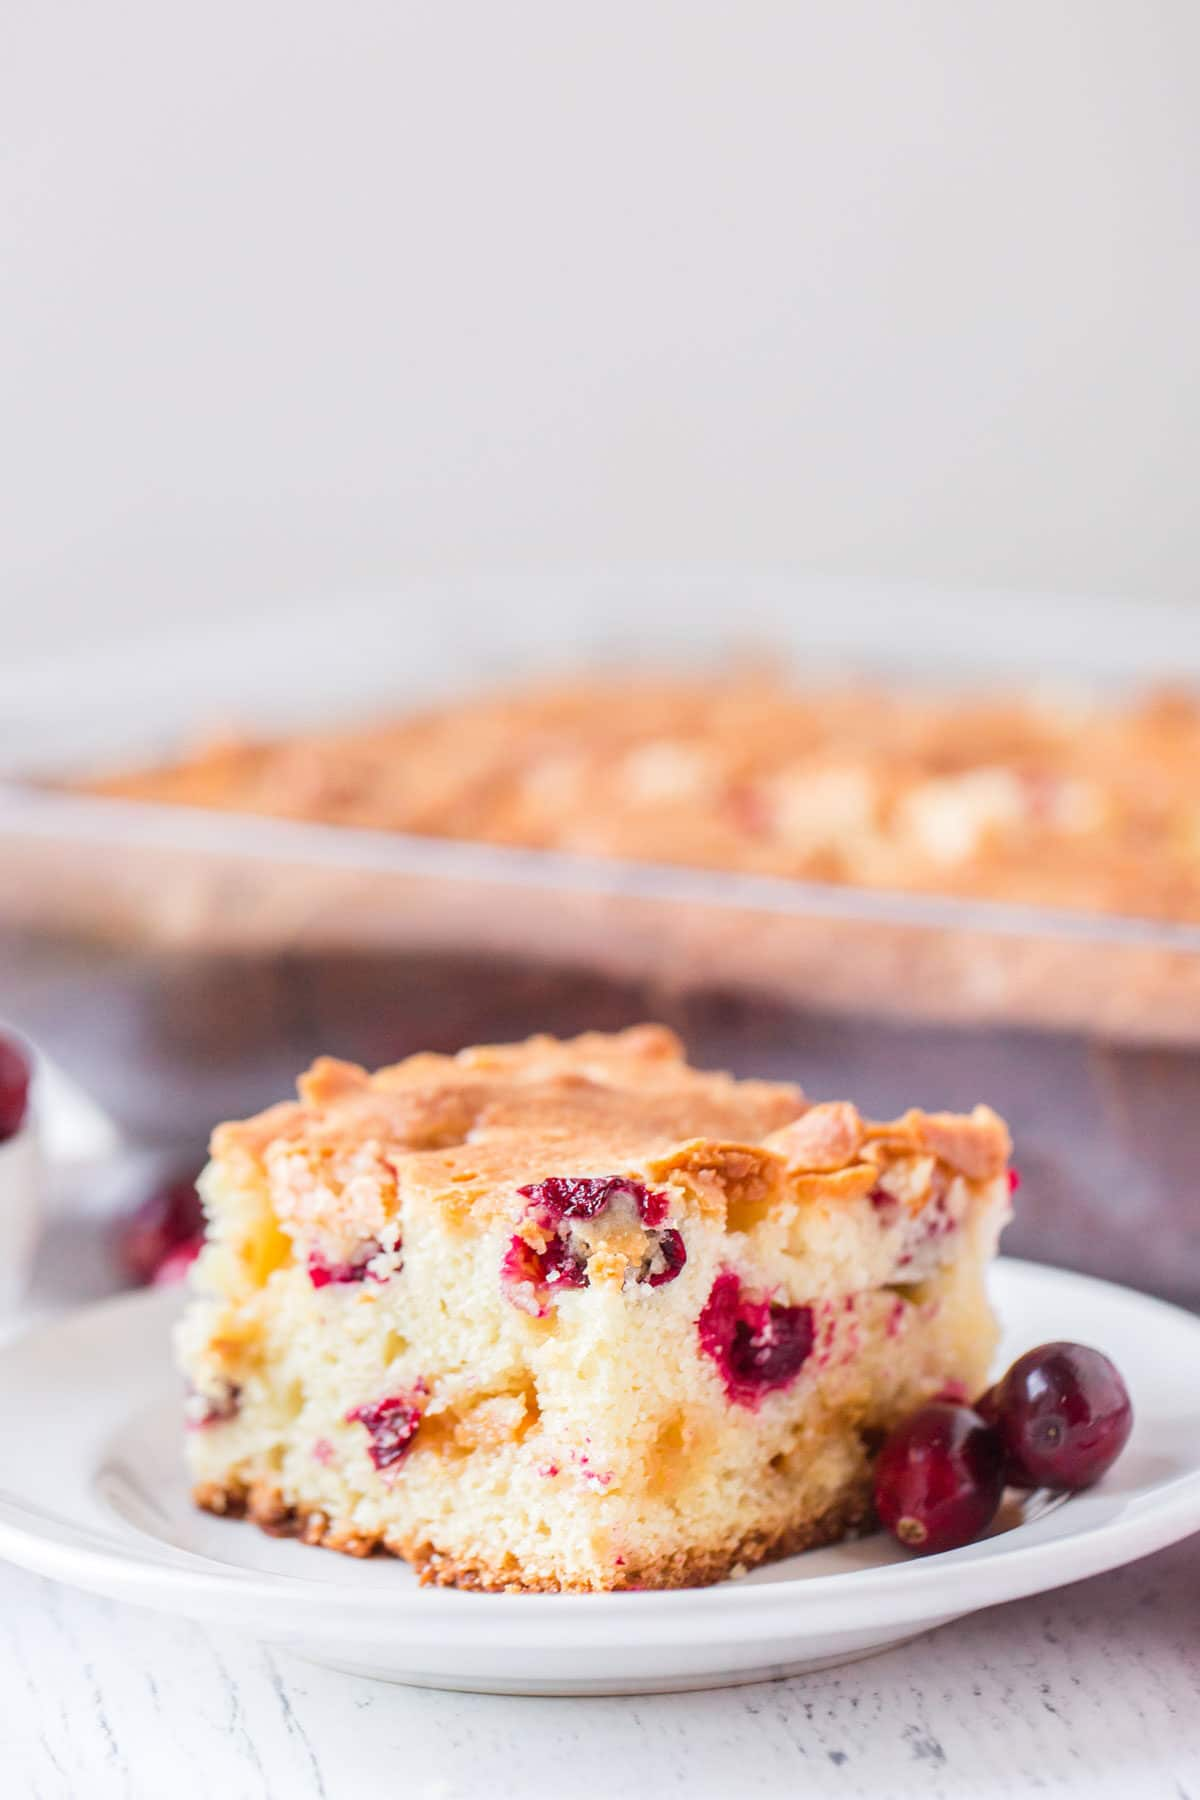 cranberry cake on a white plate